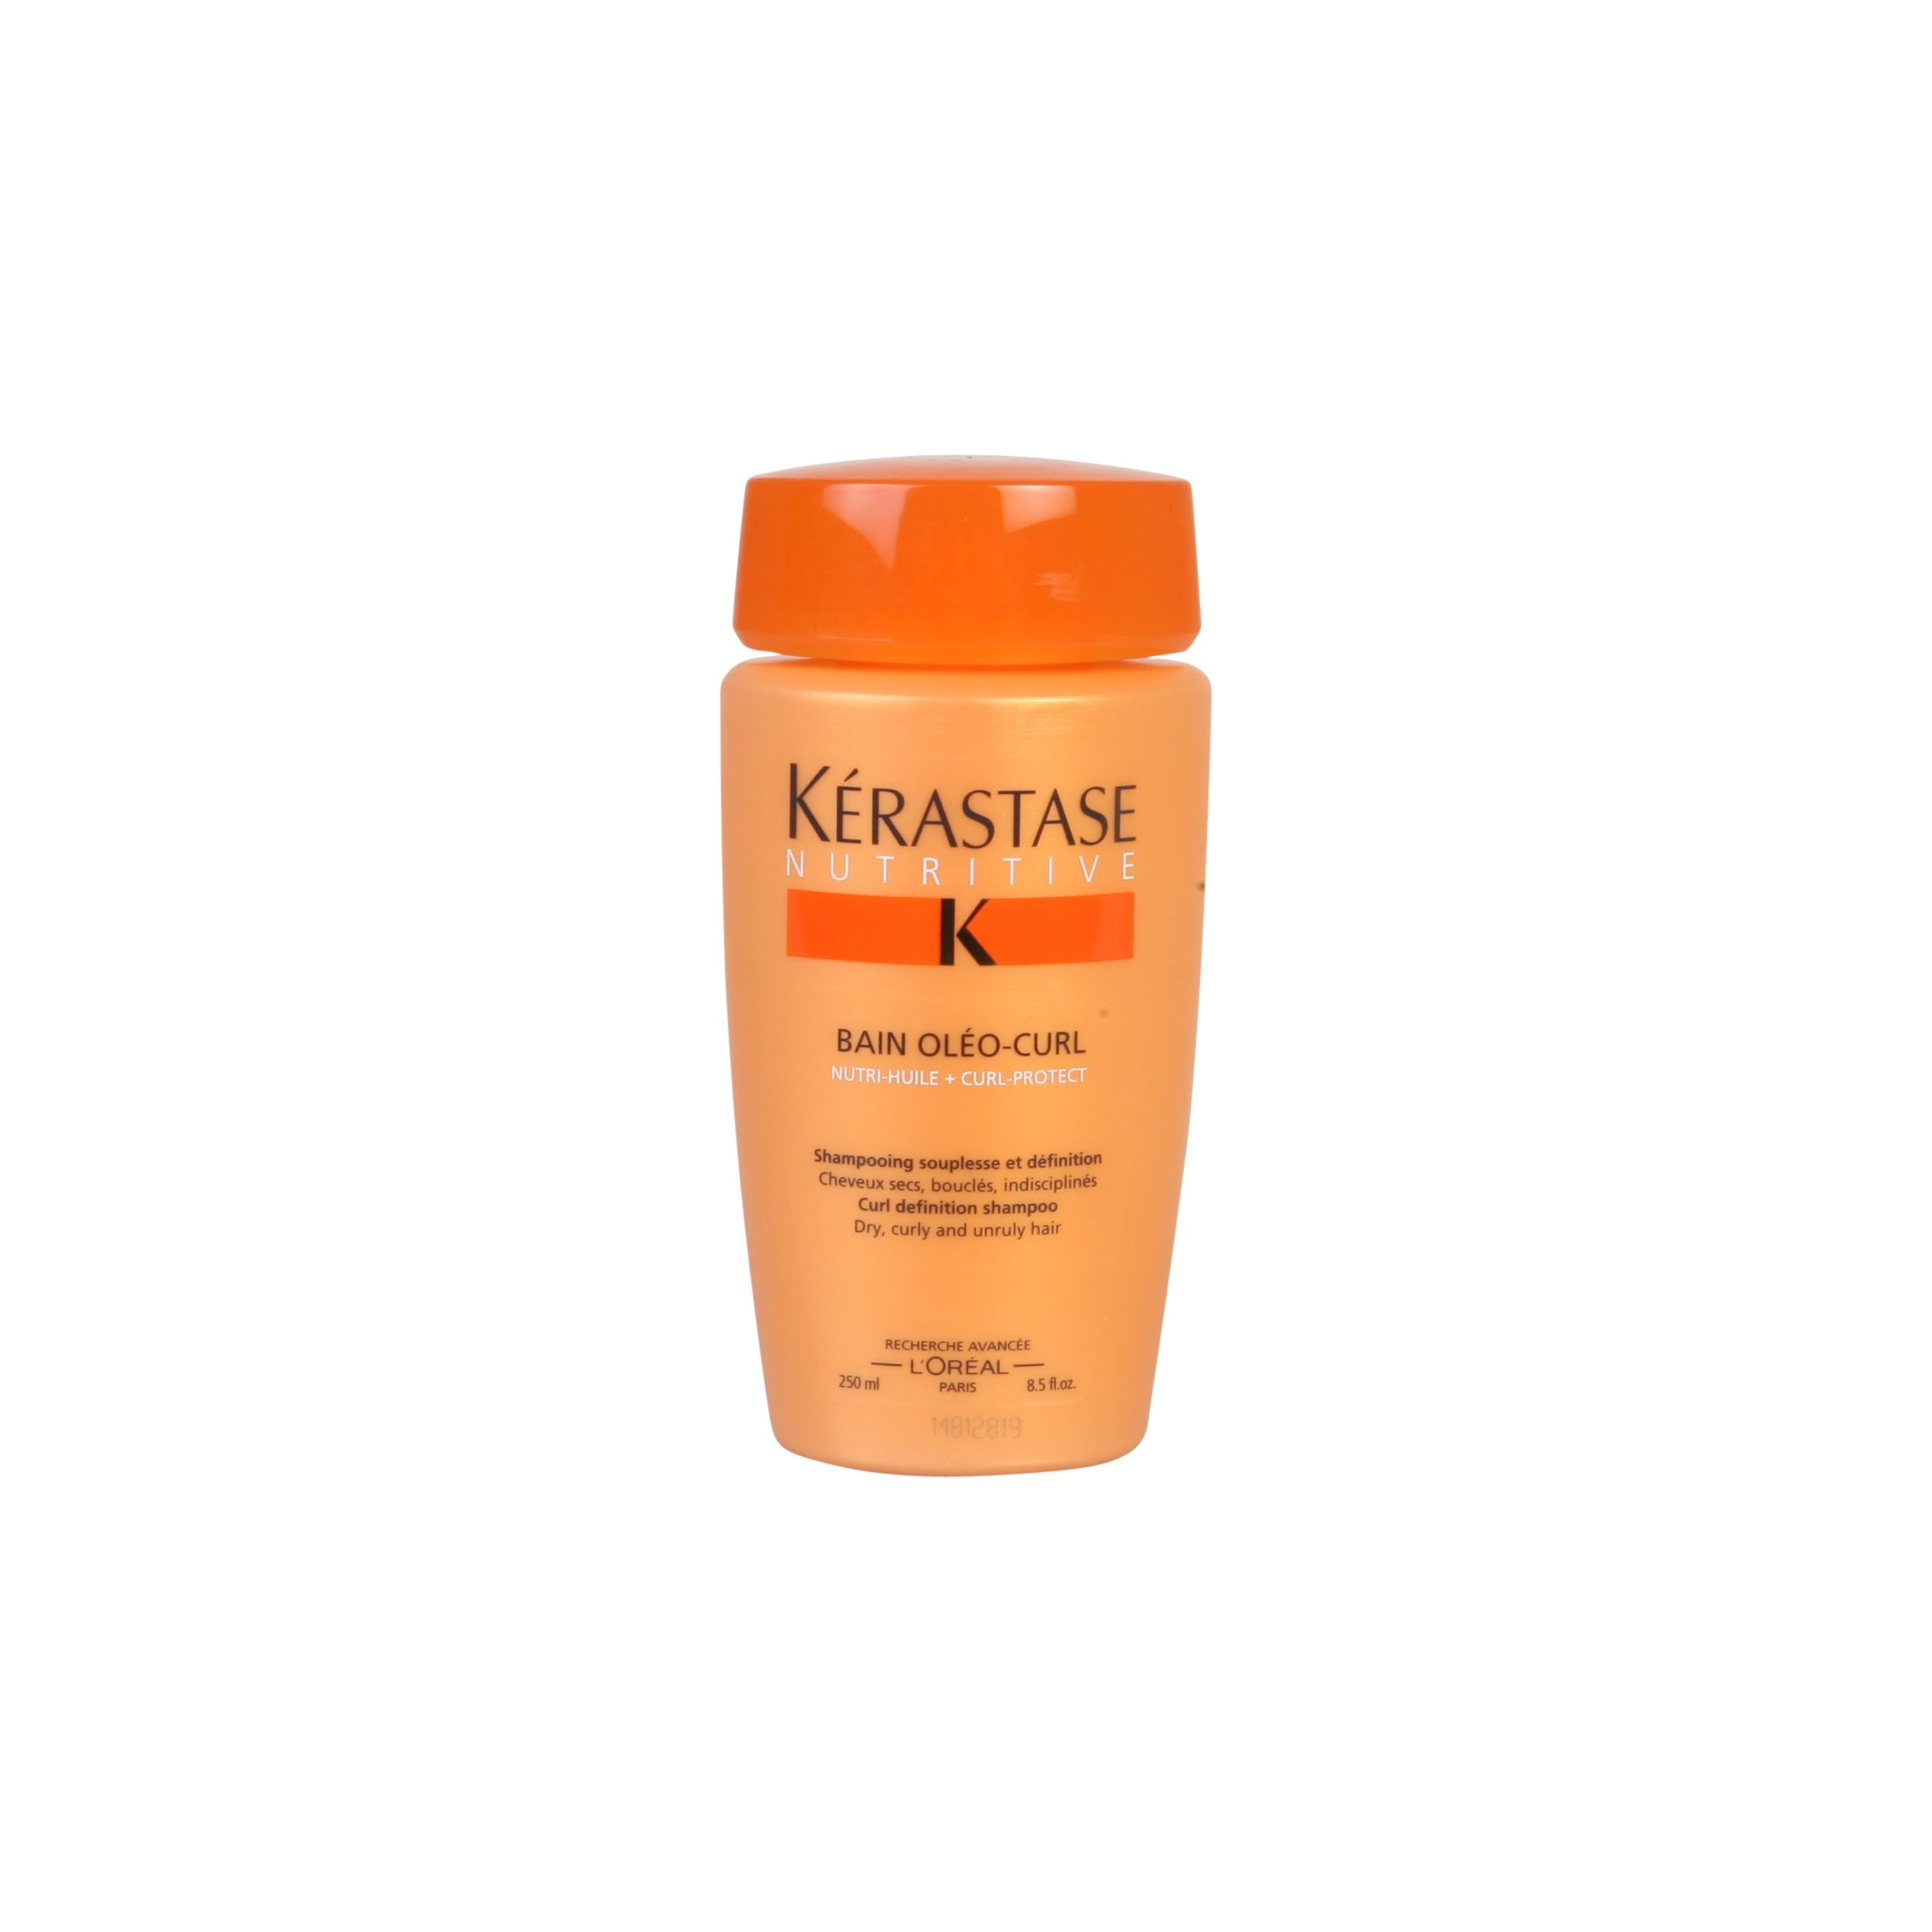 Loreal Kerastase Nutritive Bain Oleo-Curl Curl Definition Shampoo, 8.5-Ounce Bottle by KERASTASE